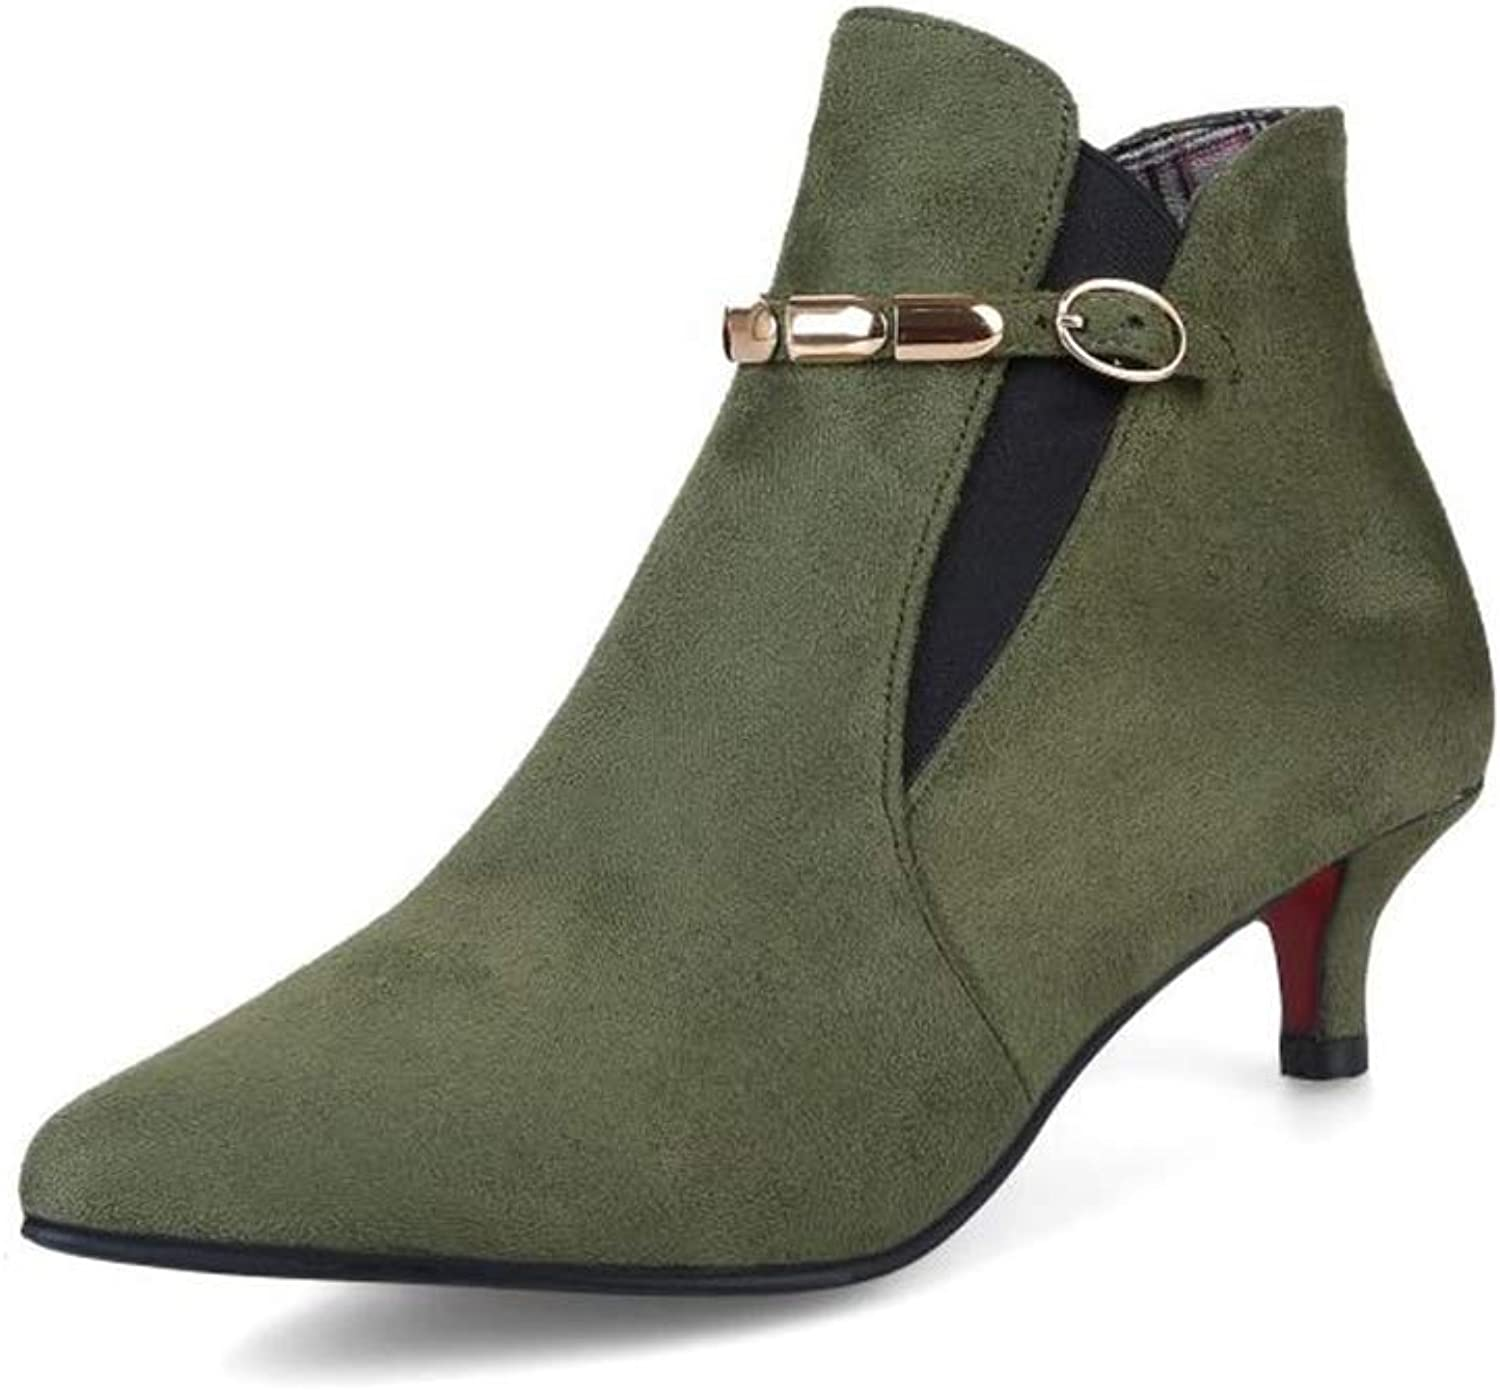 Women's Dressy Strap Buckle Pointed Toe Short Boots Stiletto High Heels Ankle Chelsea Boots